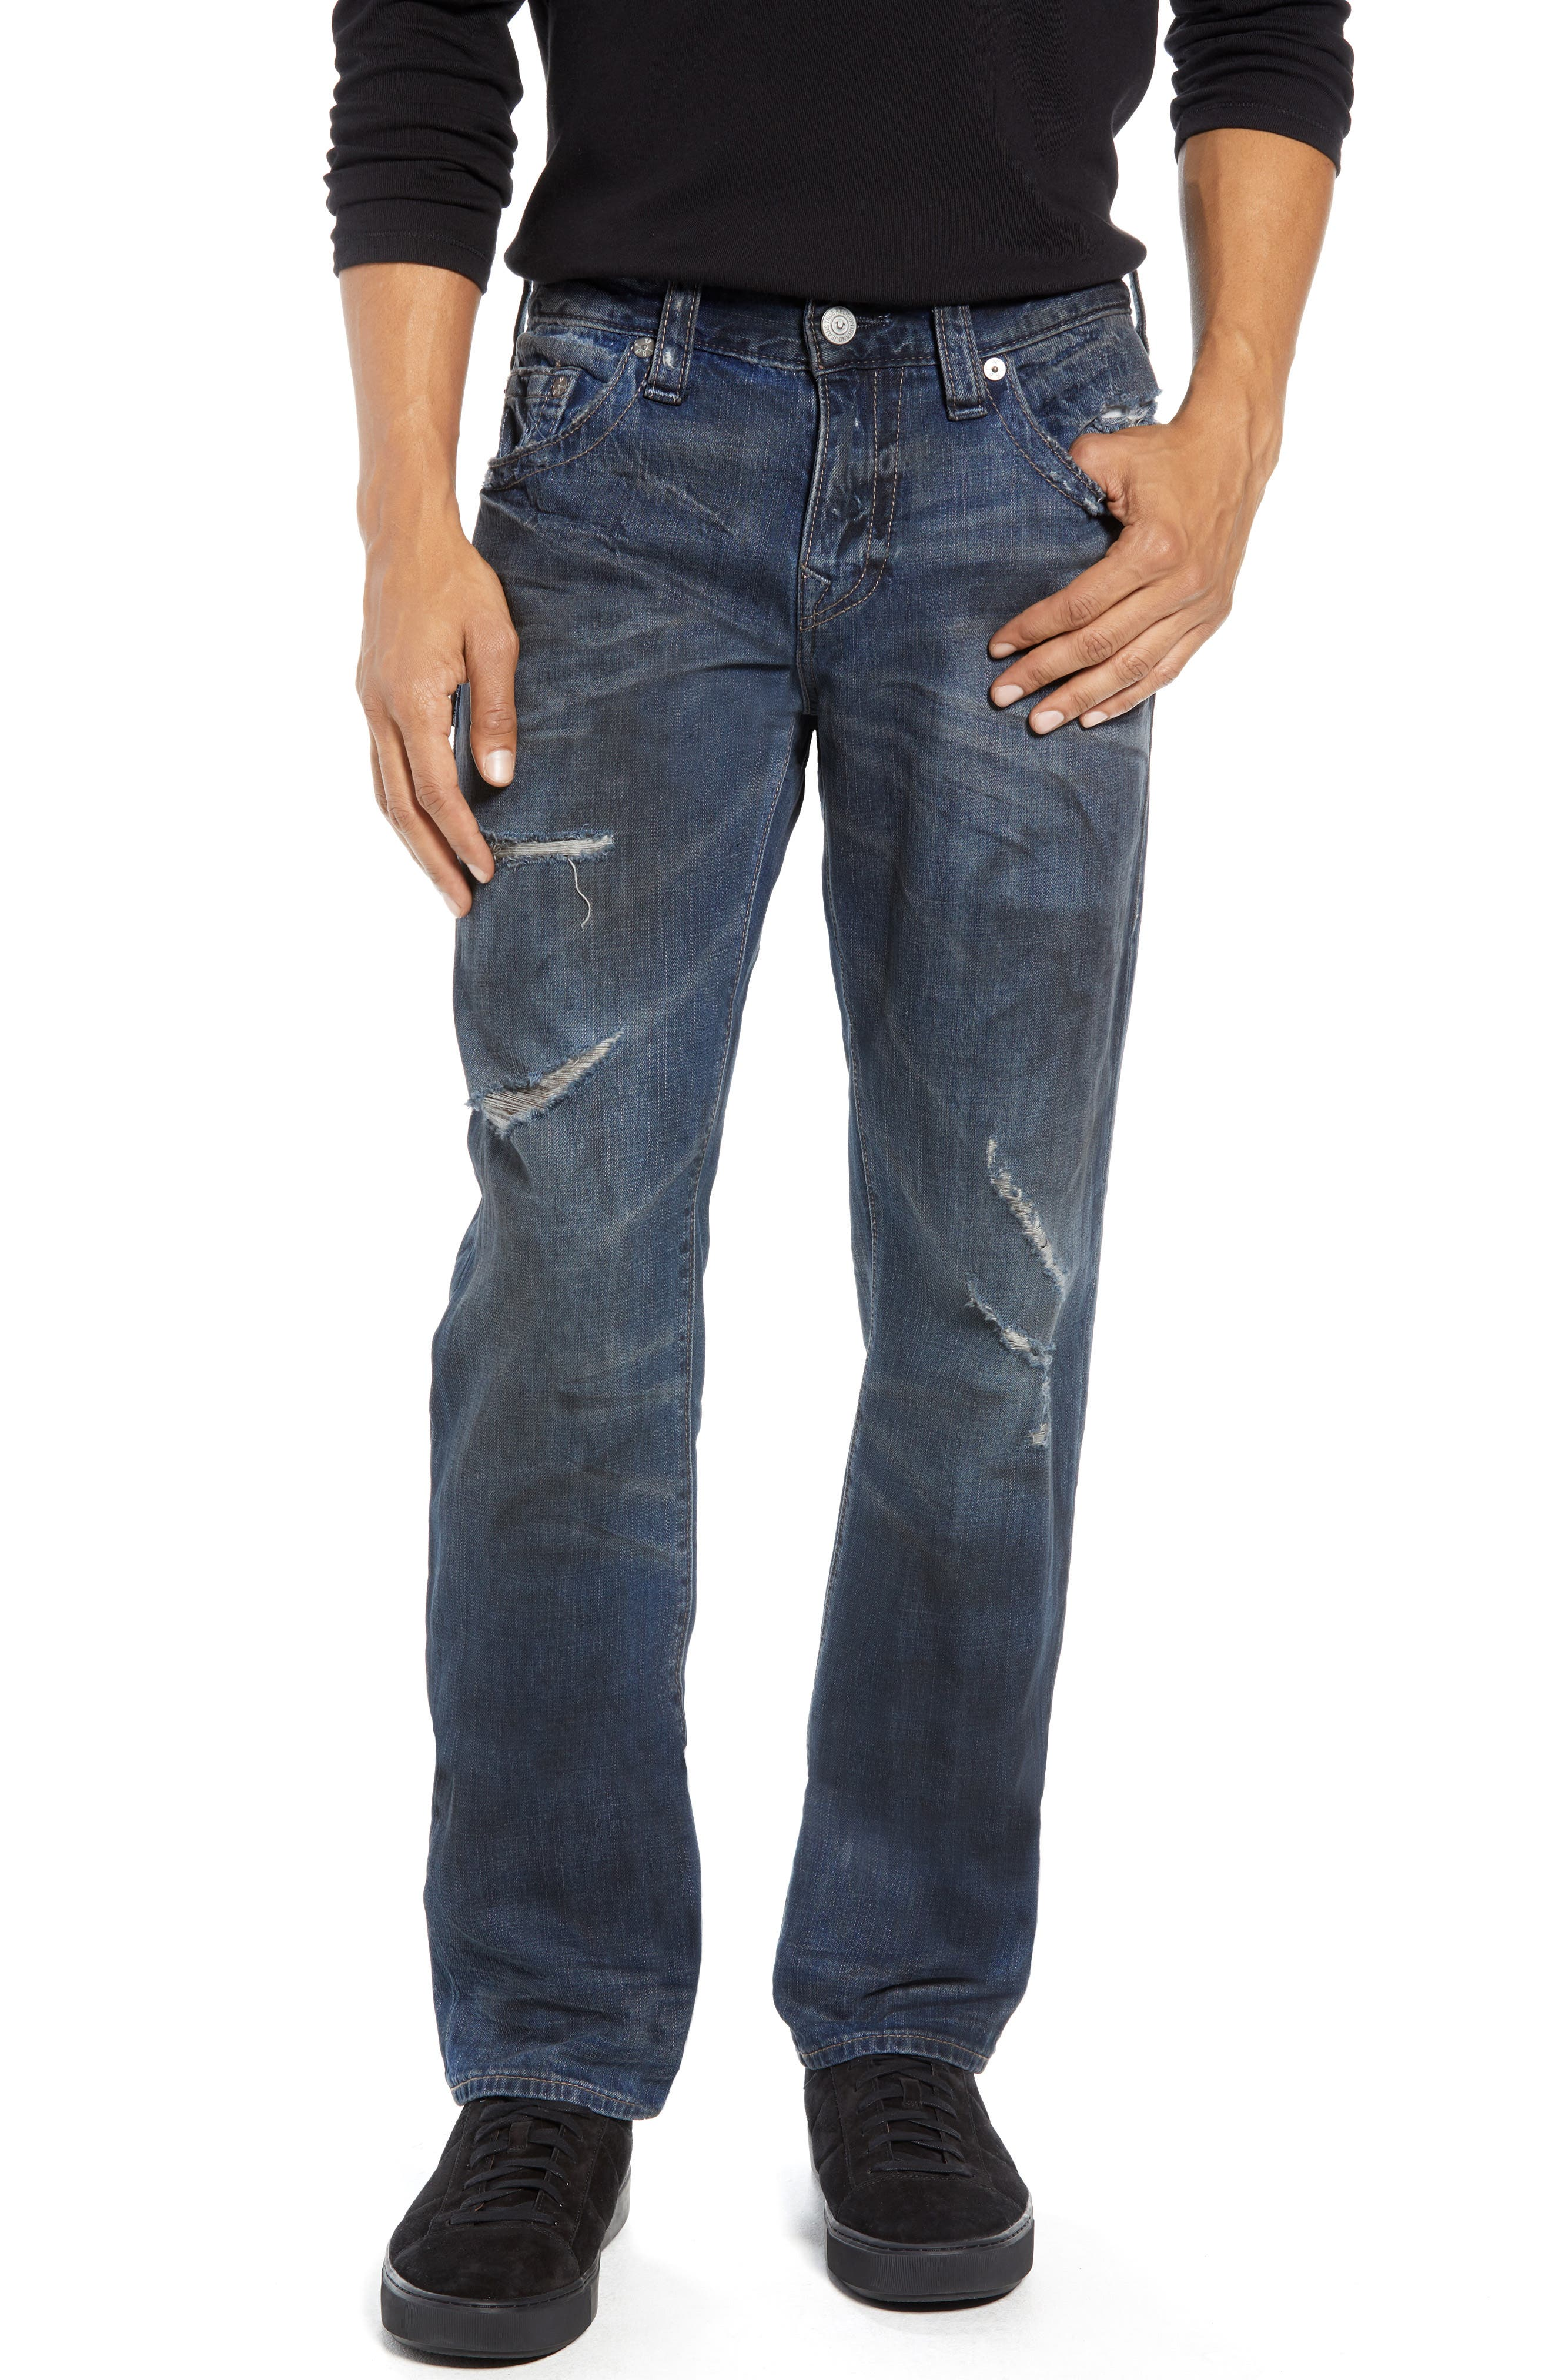 Rocco Distressed Skinny Fit Jeans,                             Main thumbnail 1, color,                             MIDNIGHT STORM